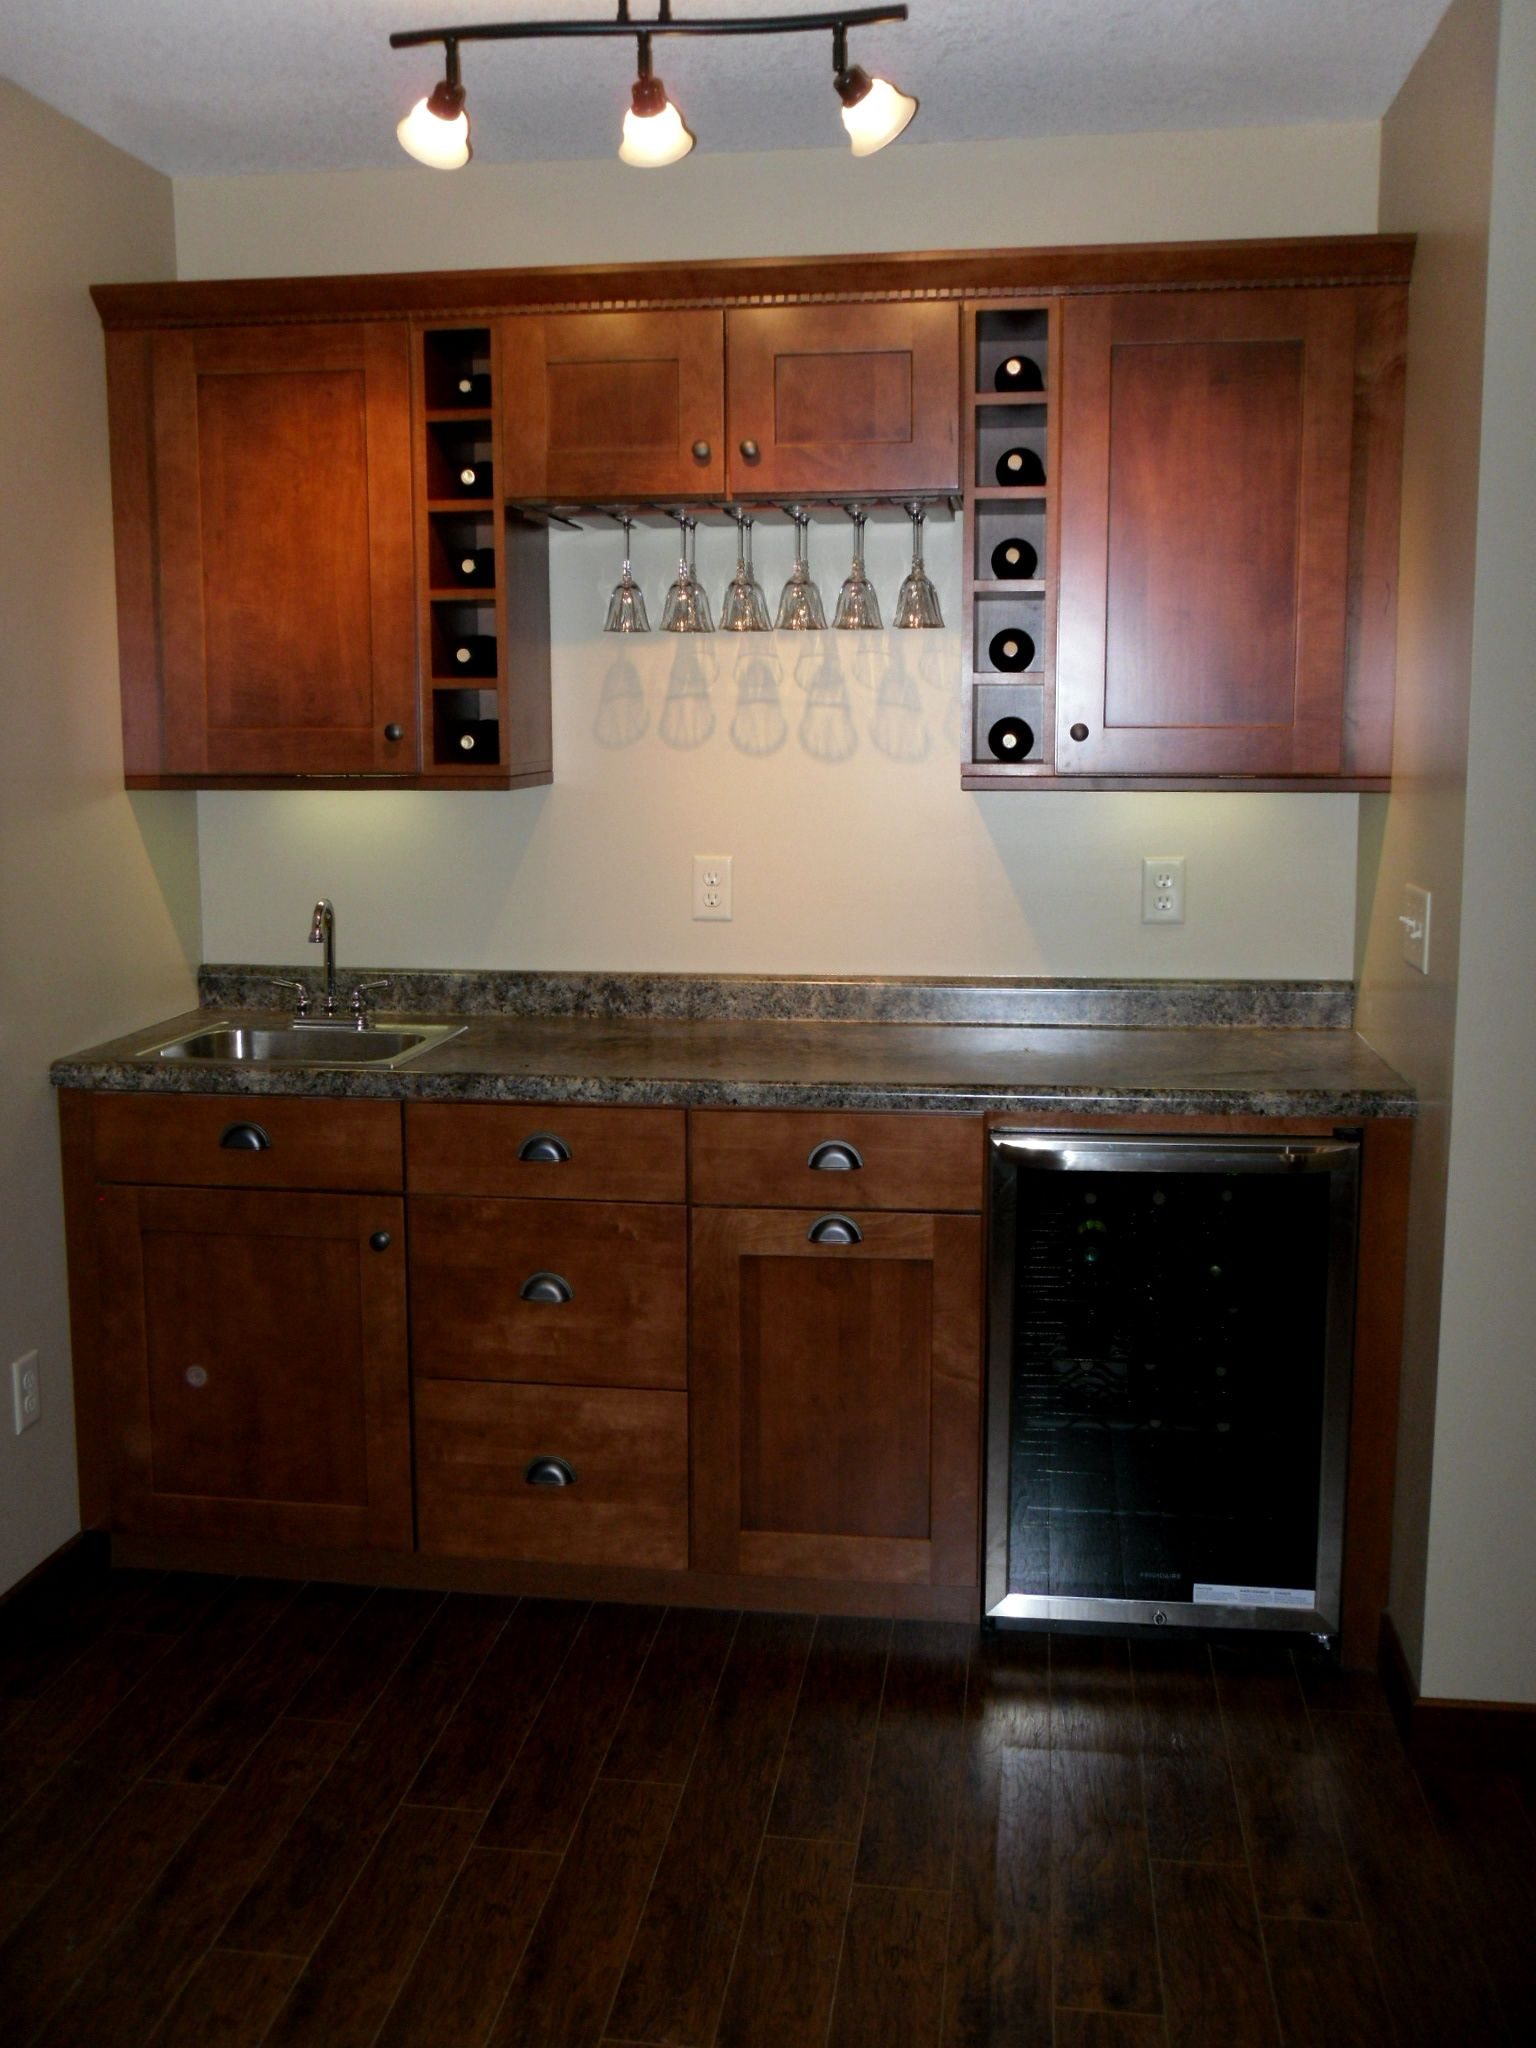 Our wet bar Cabinets from Home Depotlove  basement